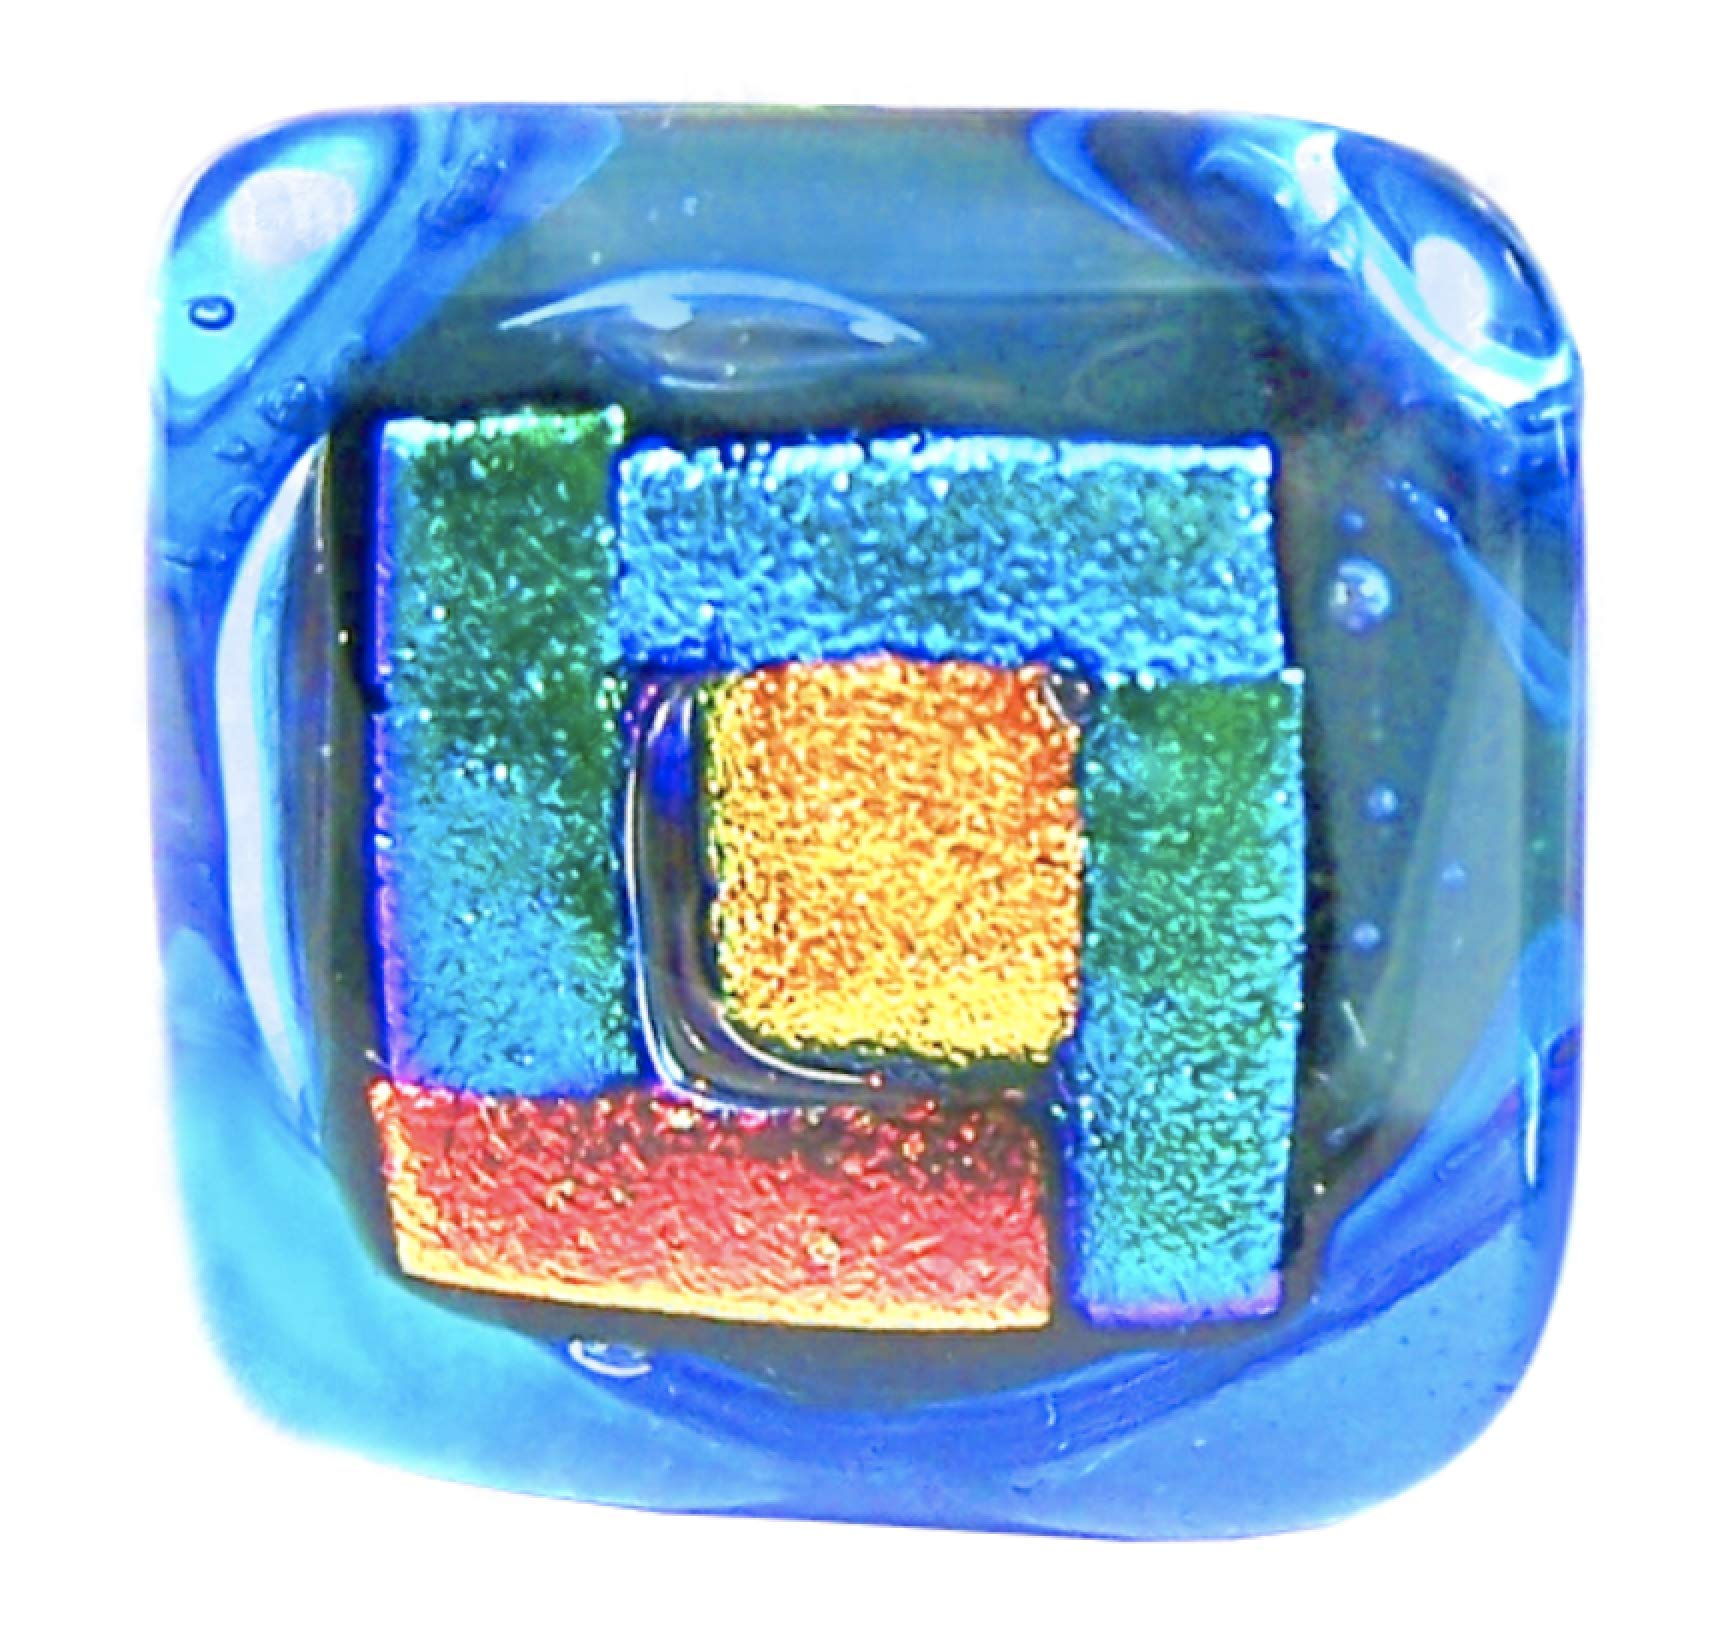 Dichroic Glass Knobs Custom Made Craftsman Geometric Blocks - Cabinet or Drawer Pull Handle - 1'' / 30mm - Green Cobalt Blue Turquoise Aqua Copper Orange Gold Fused Glass Stained Glass Handcrafted